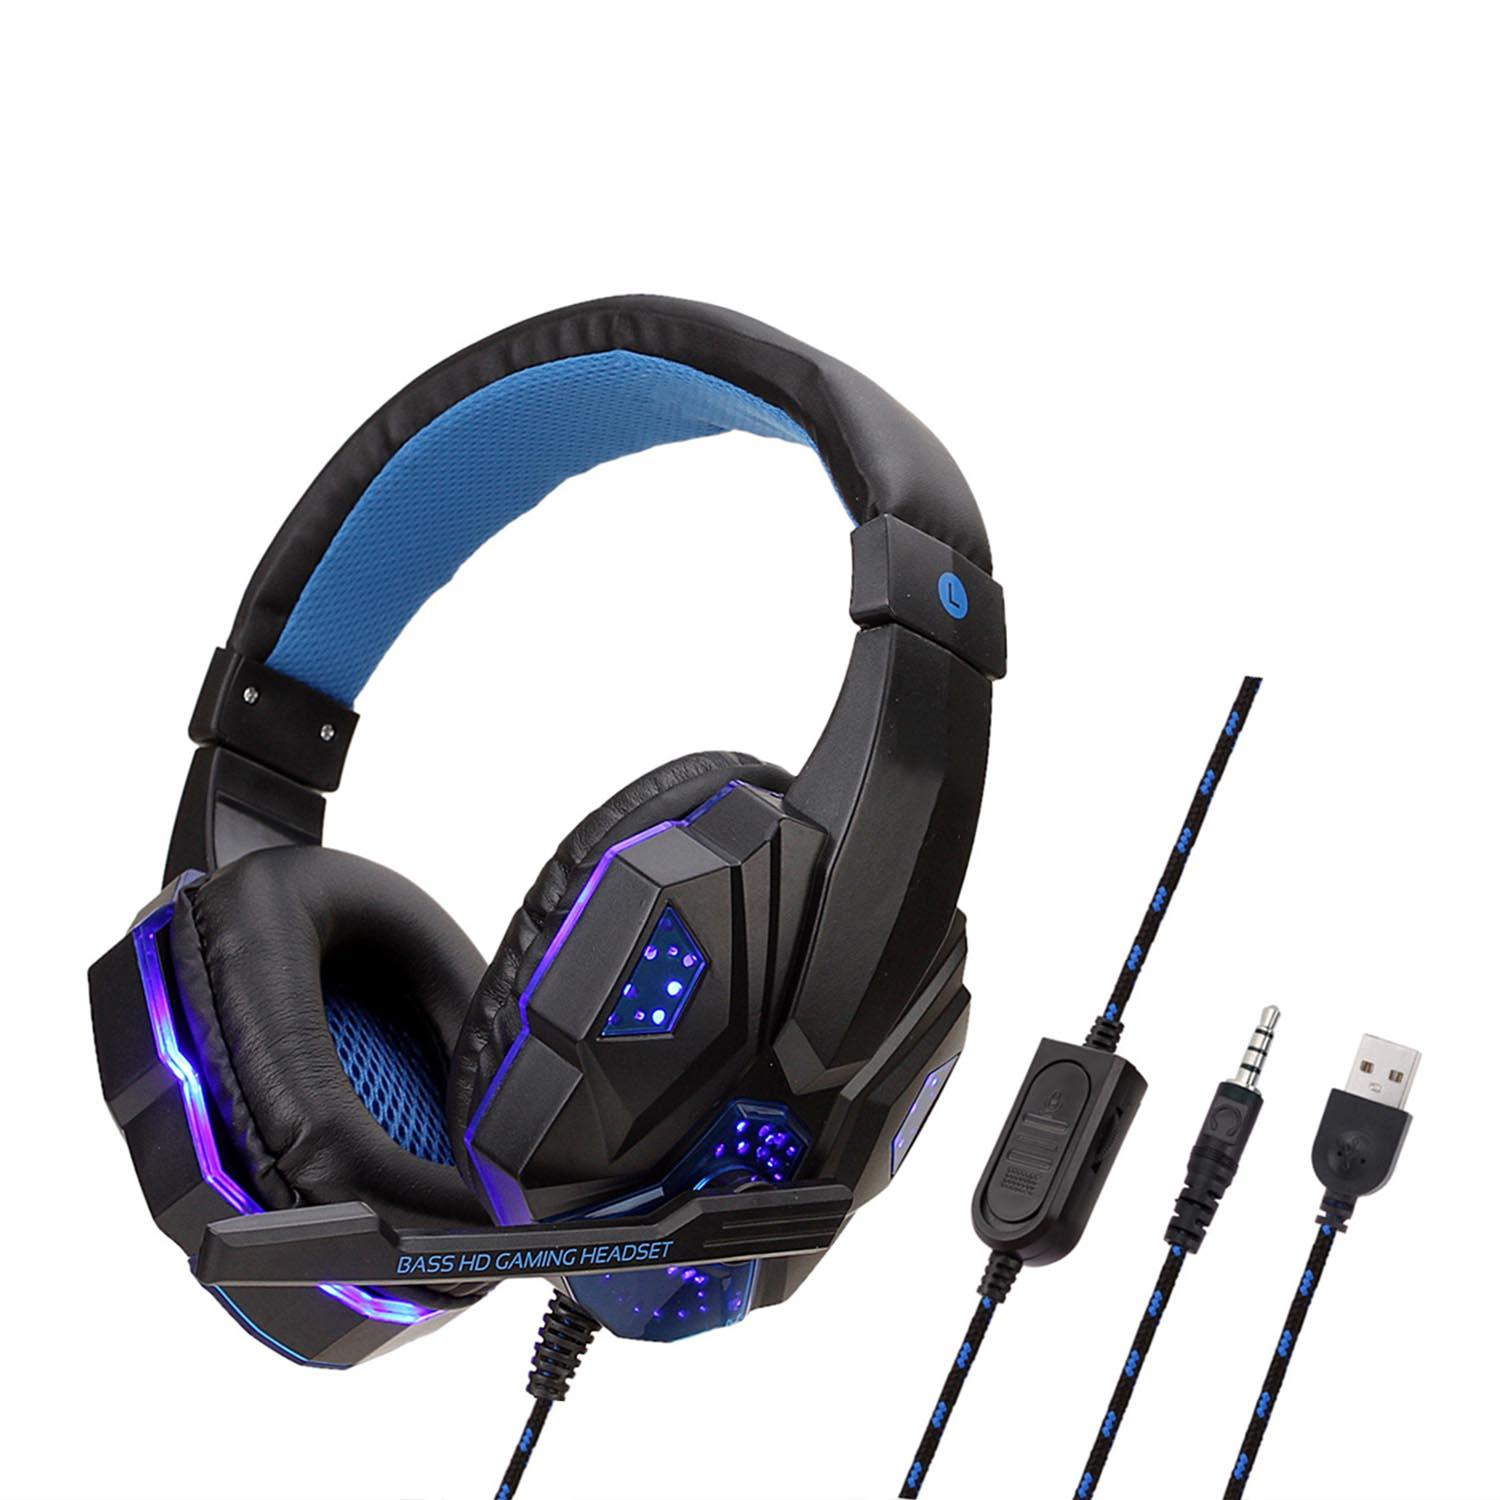 Professional Led Light Gamer Headset For Computer Ps4 Gaming Headset Adjustable Bass Stereo Pc Wired Headset And Microphone Gift Wireless Telephone Headsets Wireless Telephone Headset From Zhenglei3 9 56 Dhgate Com